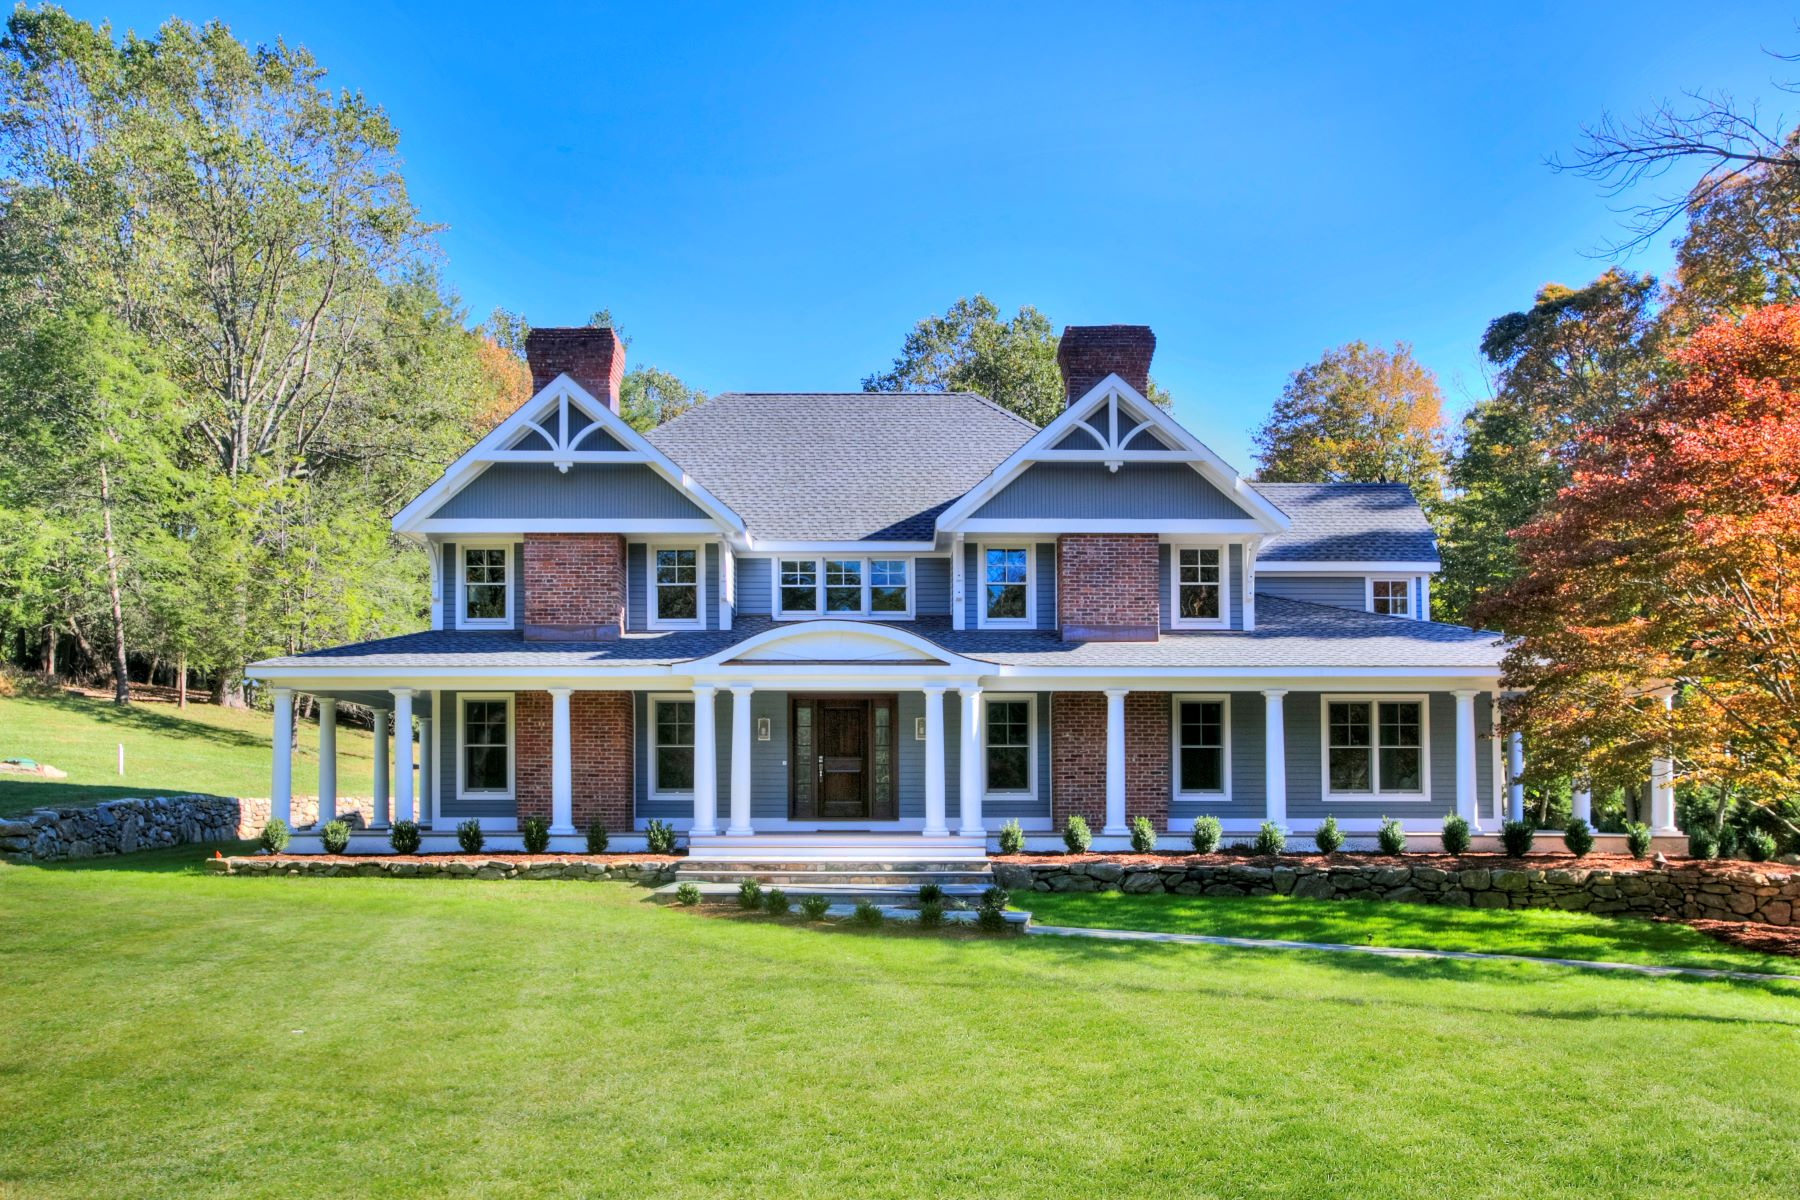 Vivienda unifamiliar por un Venta en Stunning, Thoughtfully Designed Colonial 110 Farmstead Hill Road Fairfield, Connecticut 06824 Estados Unidos